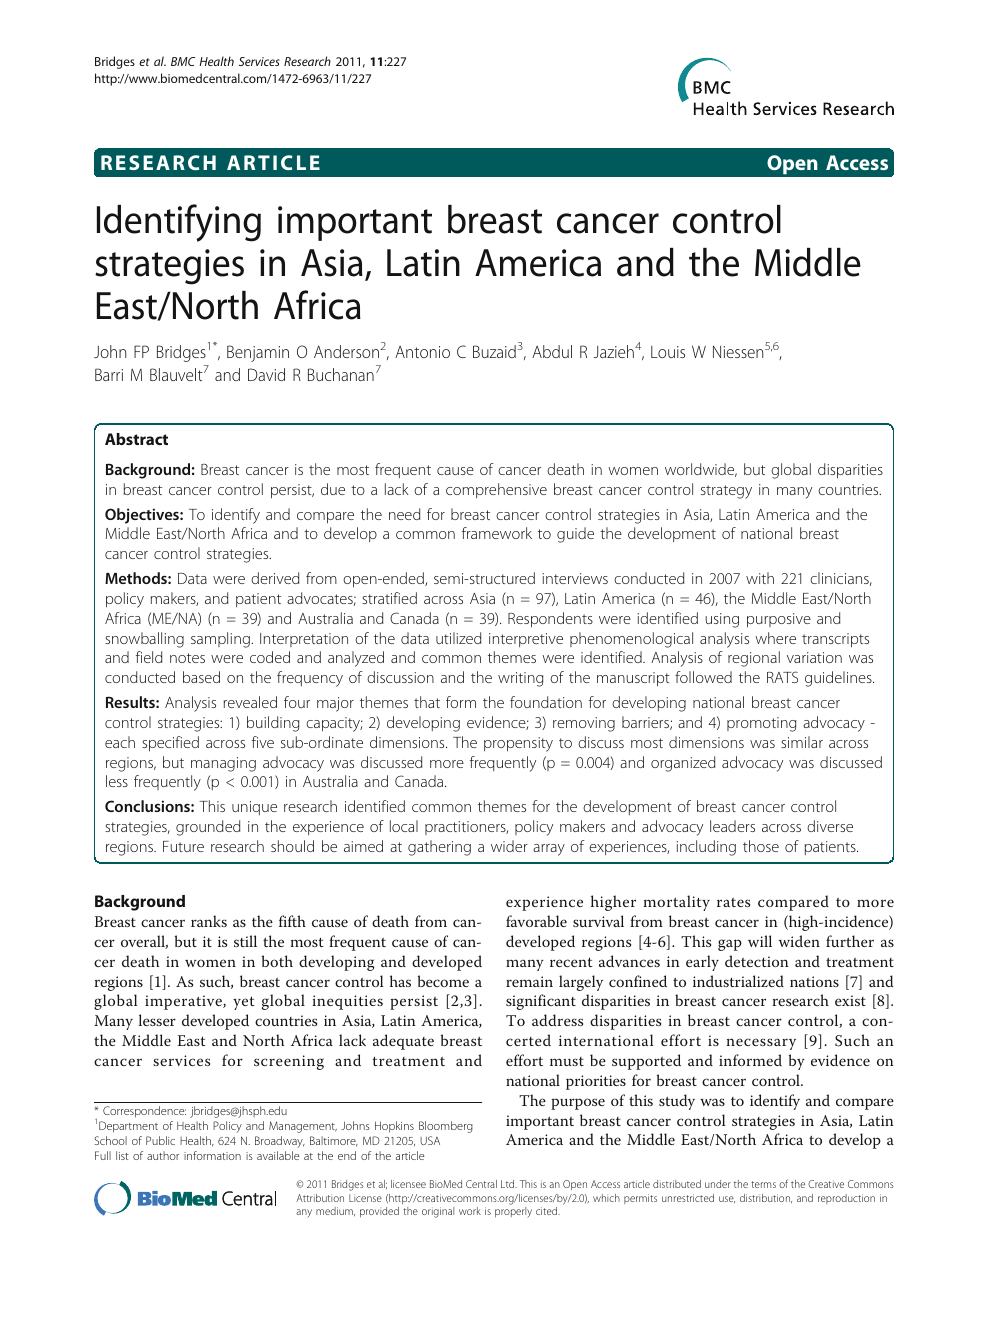 Identifying important breast cancer control strategies in